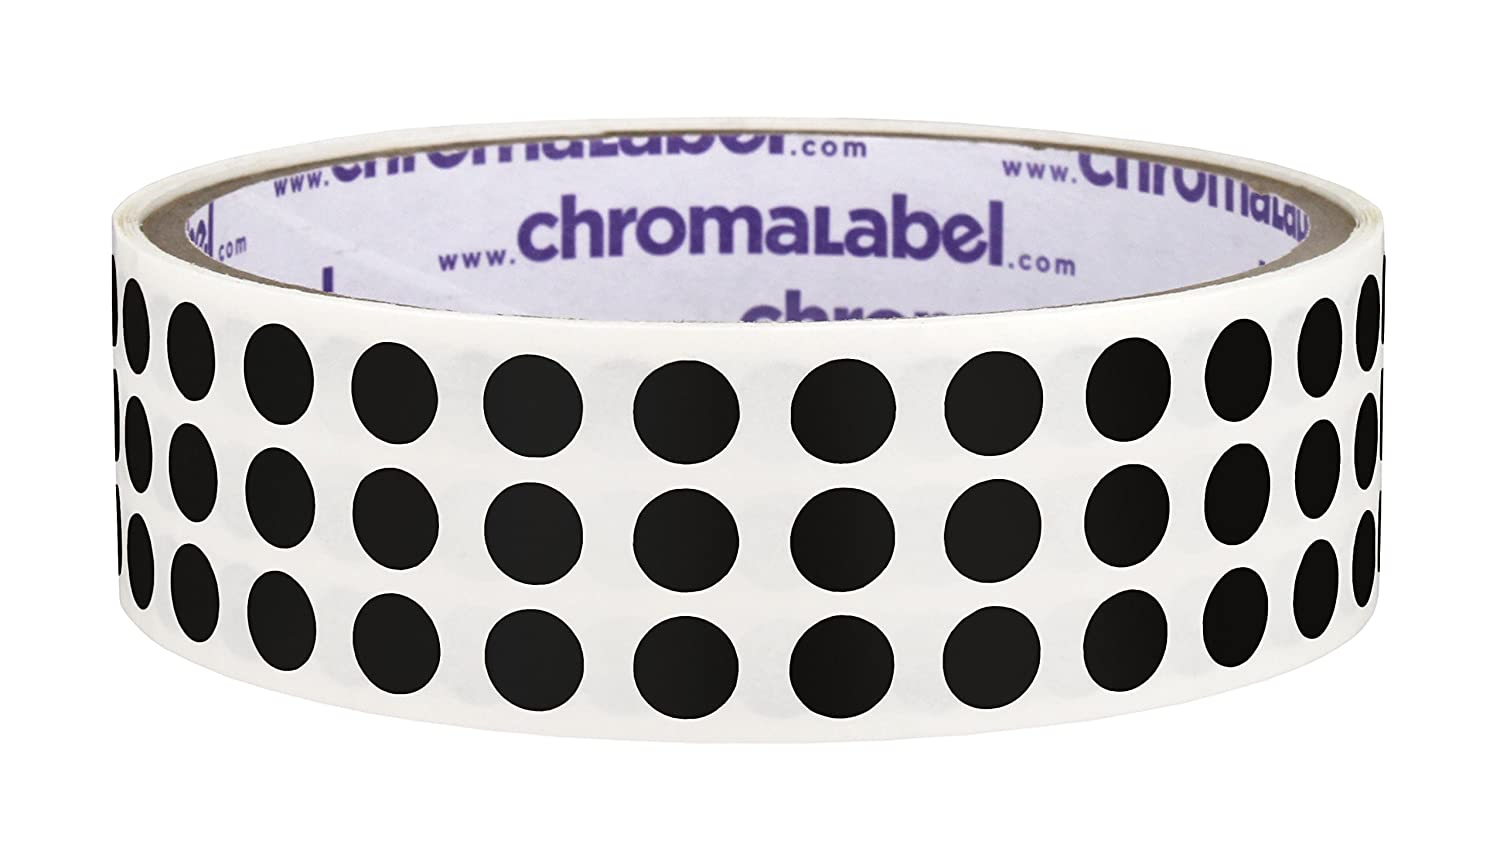 ChromaLabel 1/4 inch Color-Code Dot Labels | 1,000/Roll (Black)